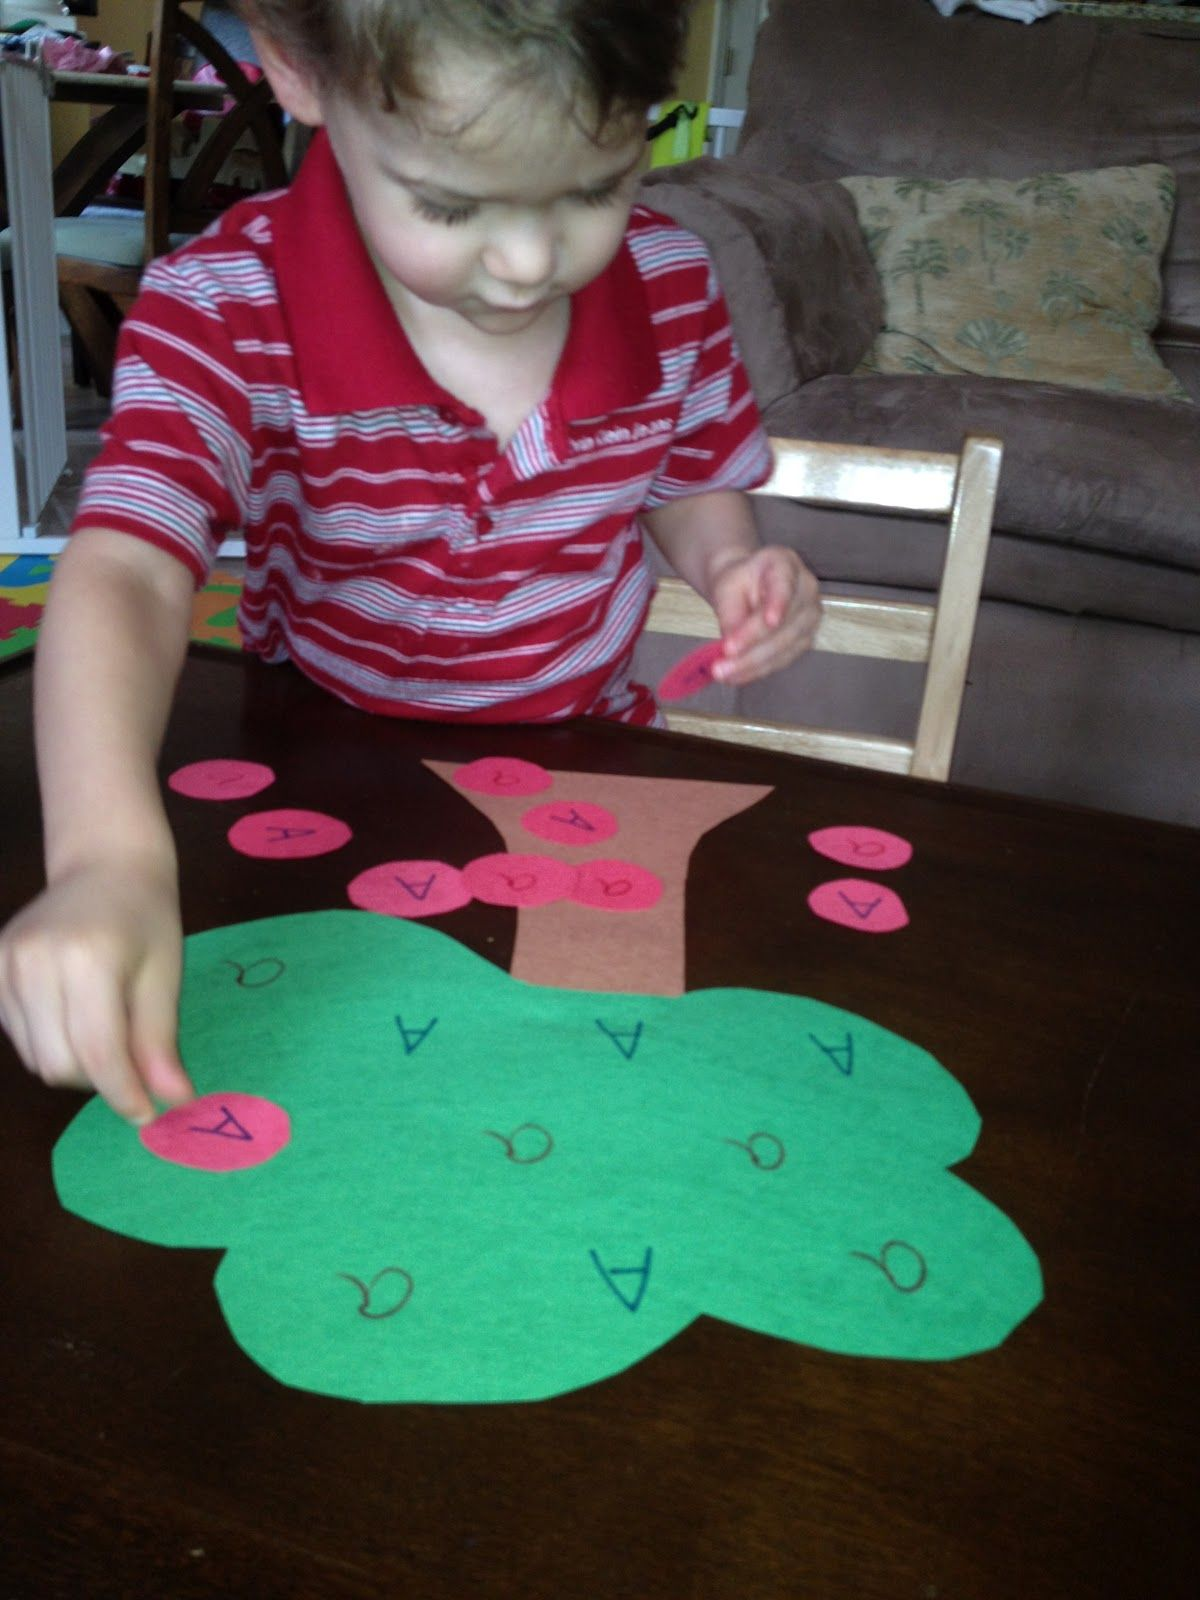 Apple Tree Game Love This Idea But Could Use All Letters And Match Uppercase With Lowercase